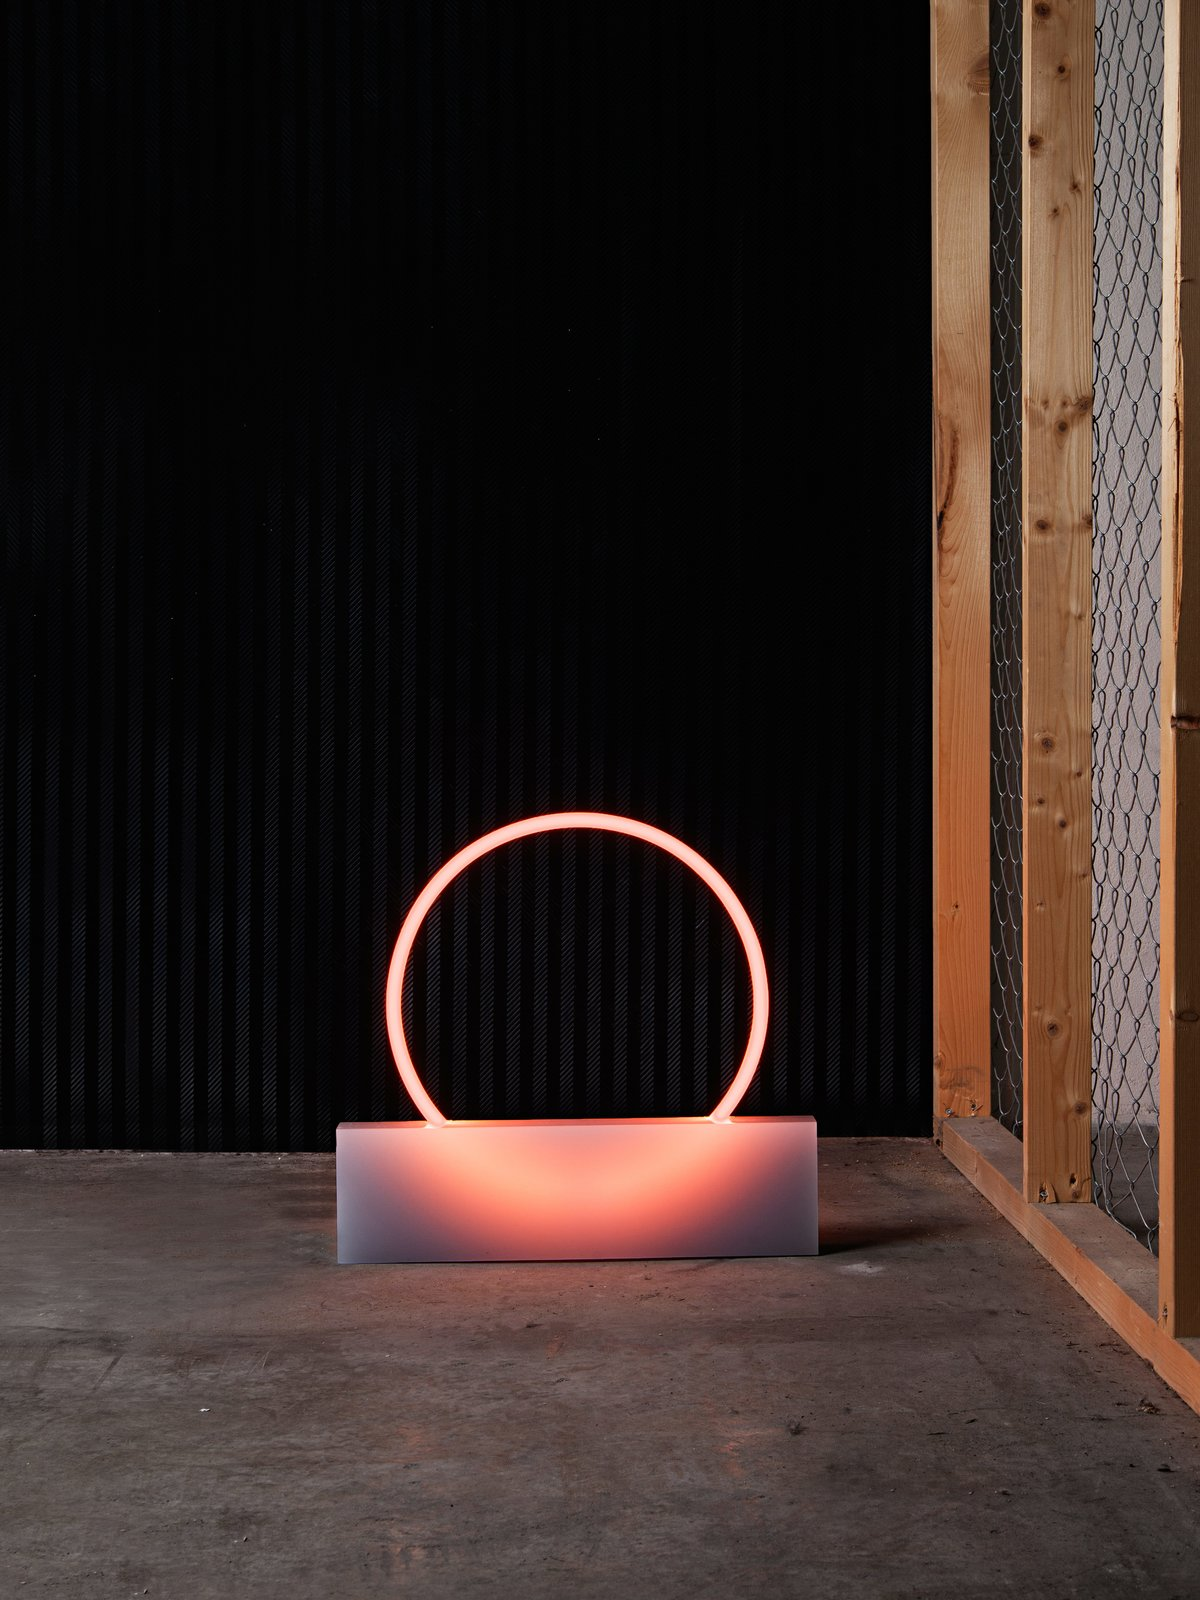 A smaller lighting piece from Sabine Marcelis's VOIE light series #1.  60+ Modern Lighting Solutions by Dwell from The New Zealand Native That's Taking Over Rotterdam